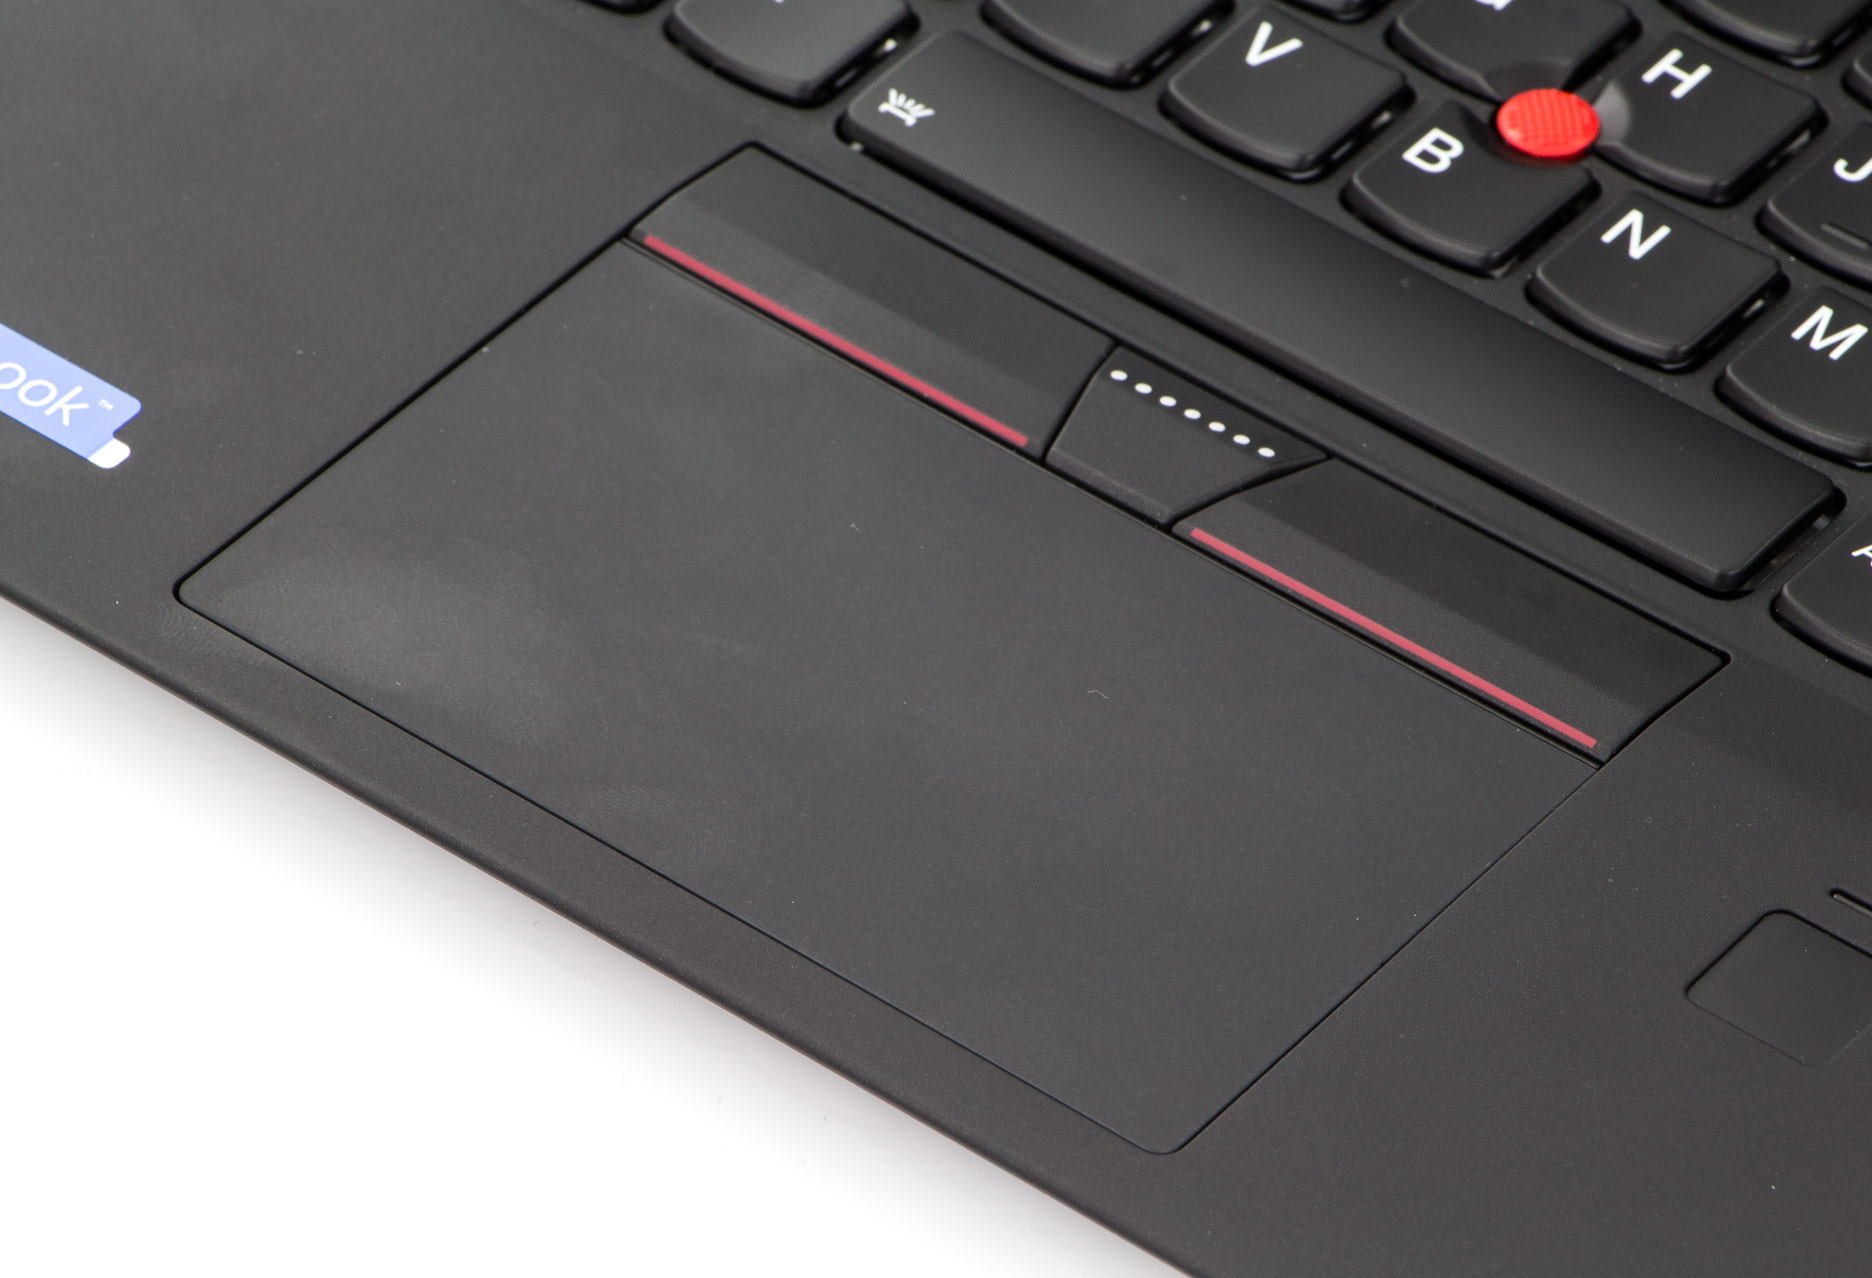 Lenovo ThinkPad X1 Carbon 5 touchpad